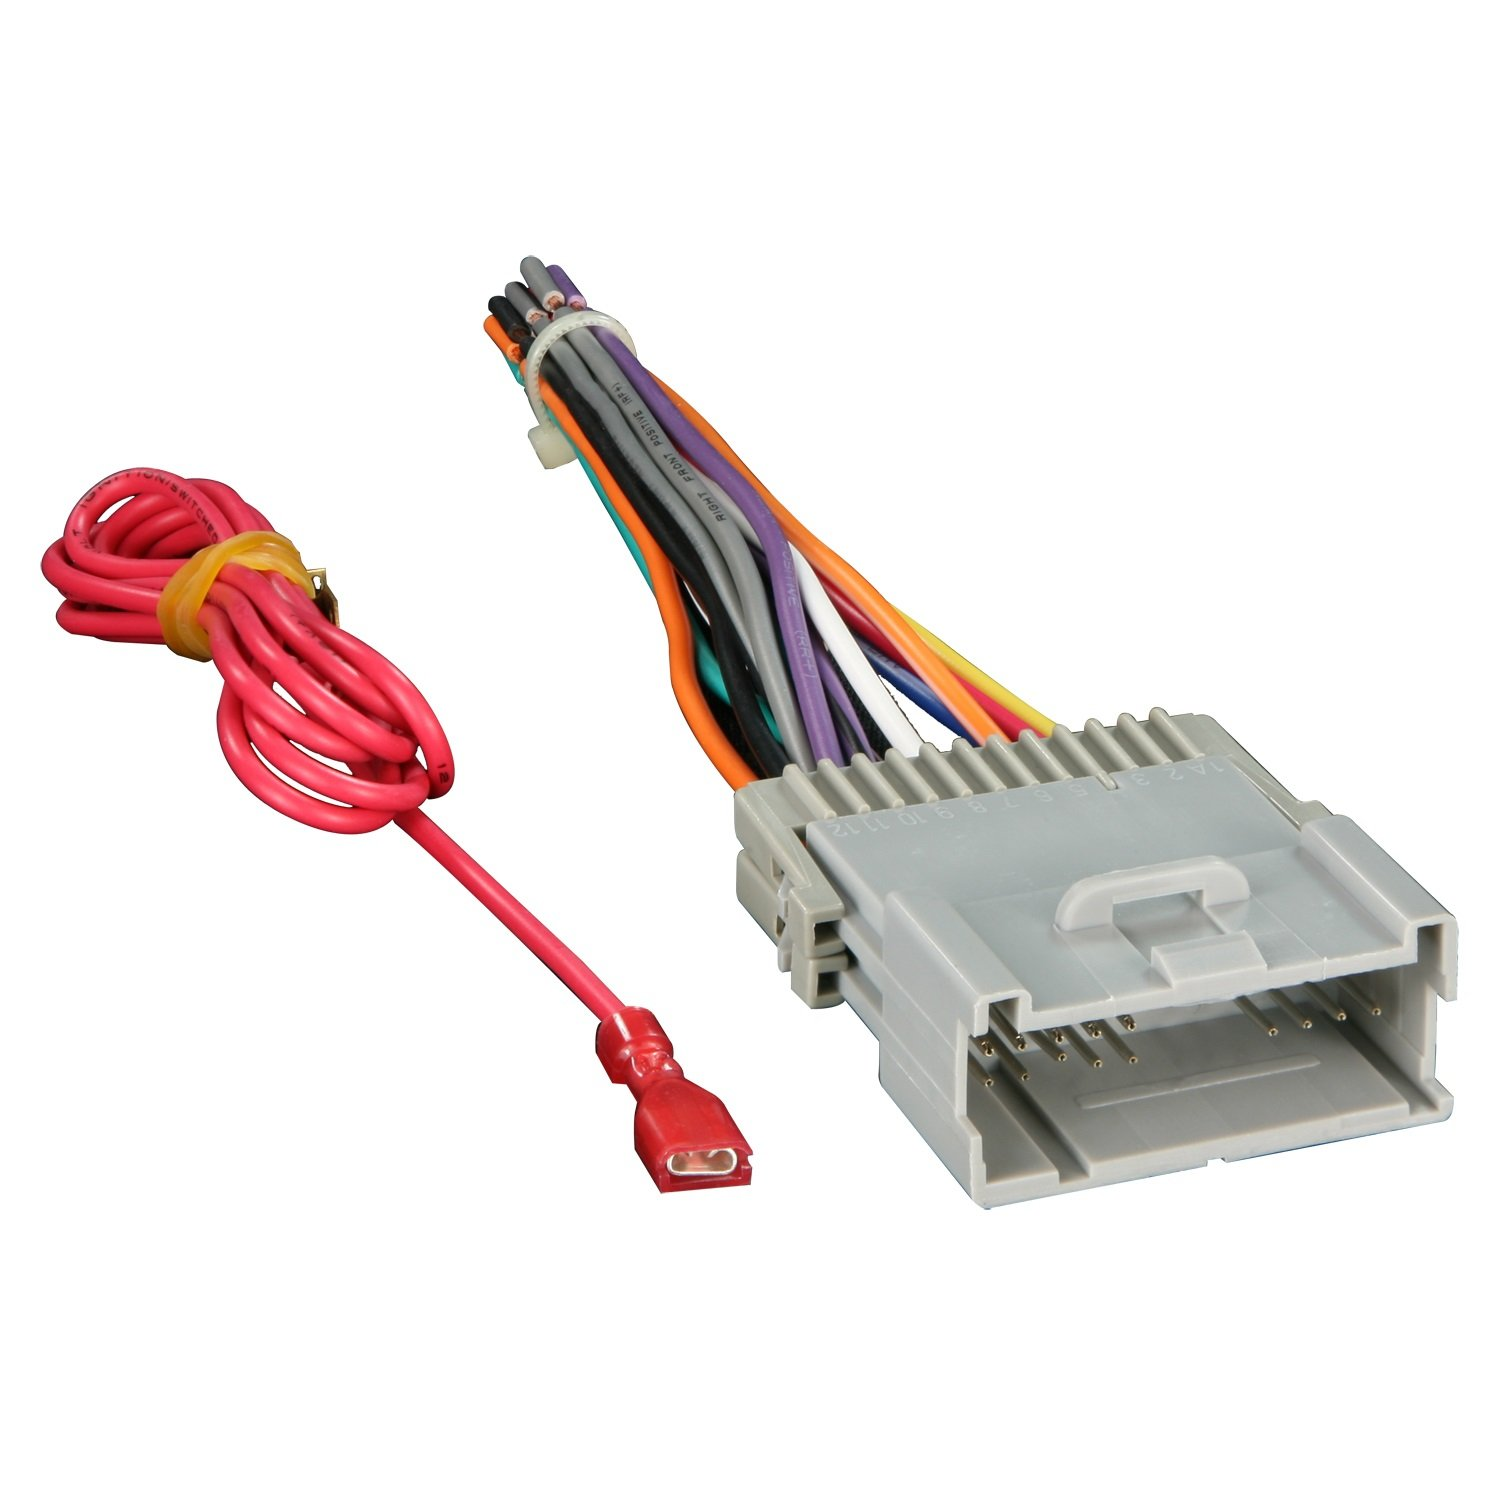 61eewxp9orL._SL1500_ amazon com metra 70 2003 radio wiring harness for gm 98 08 snap on wire harness adapter at bayanpartner.co